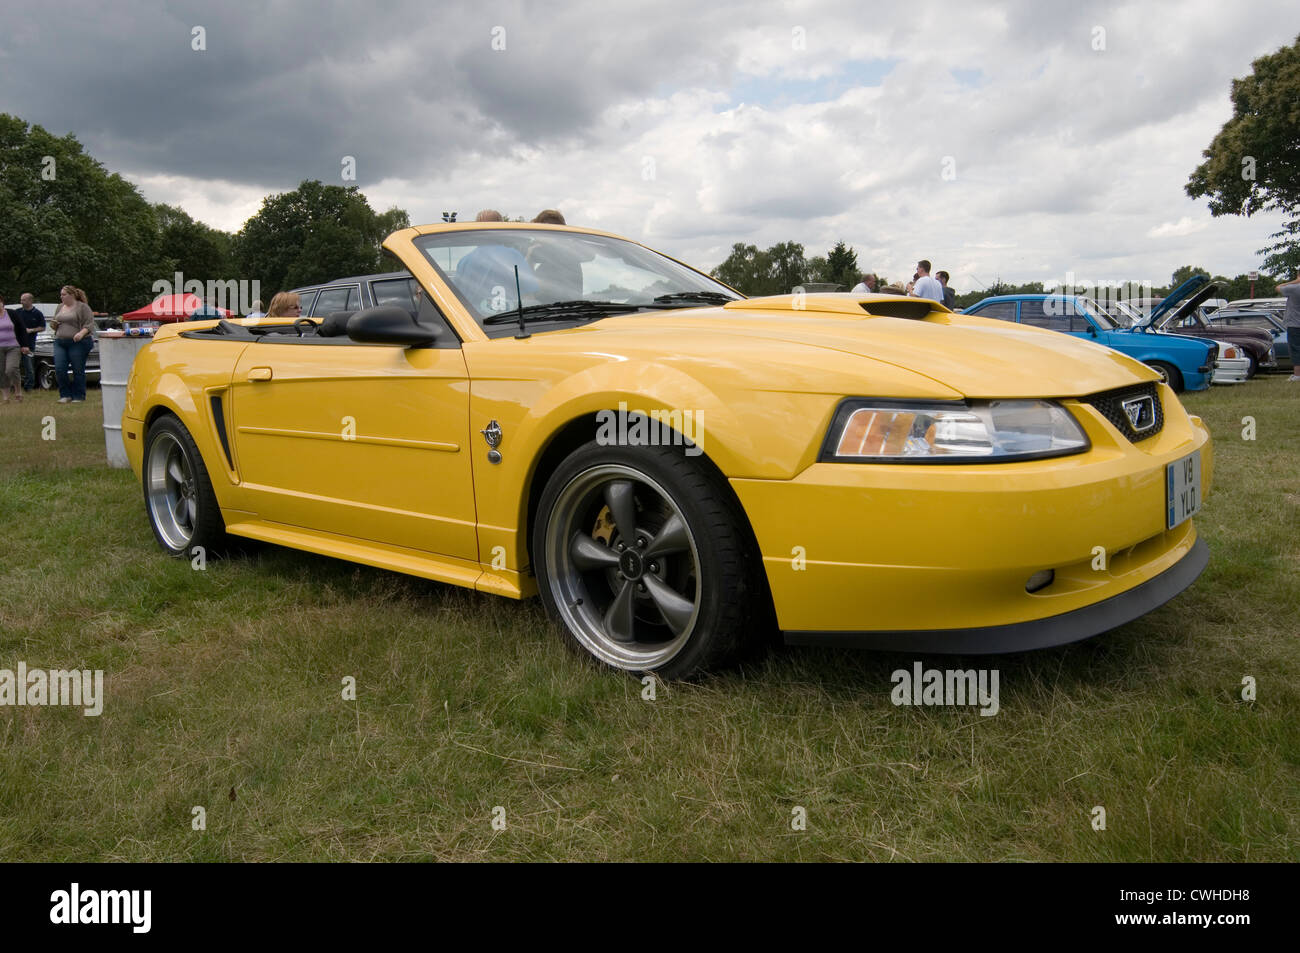 Ford mustang 2000 convertible soft top tops yellow stock image